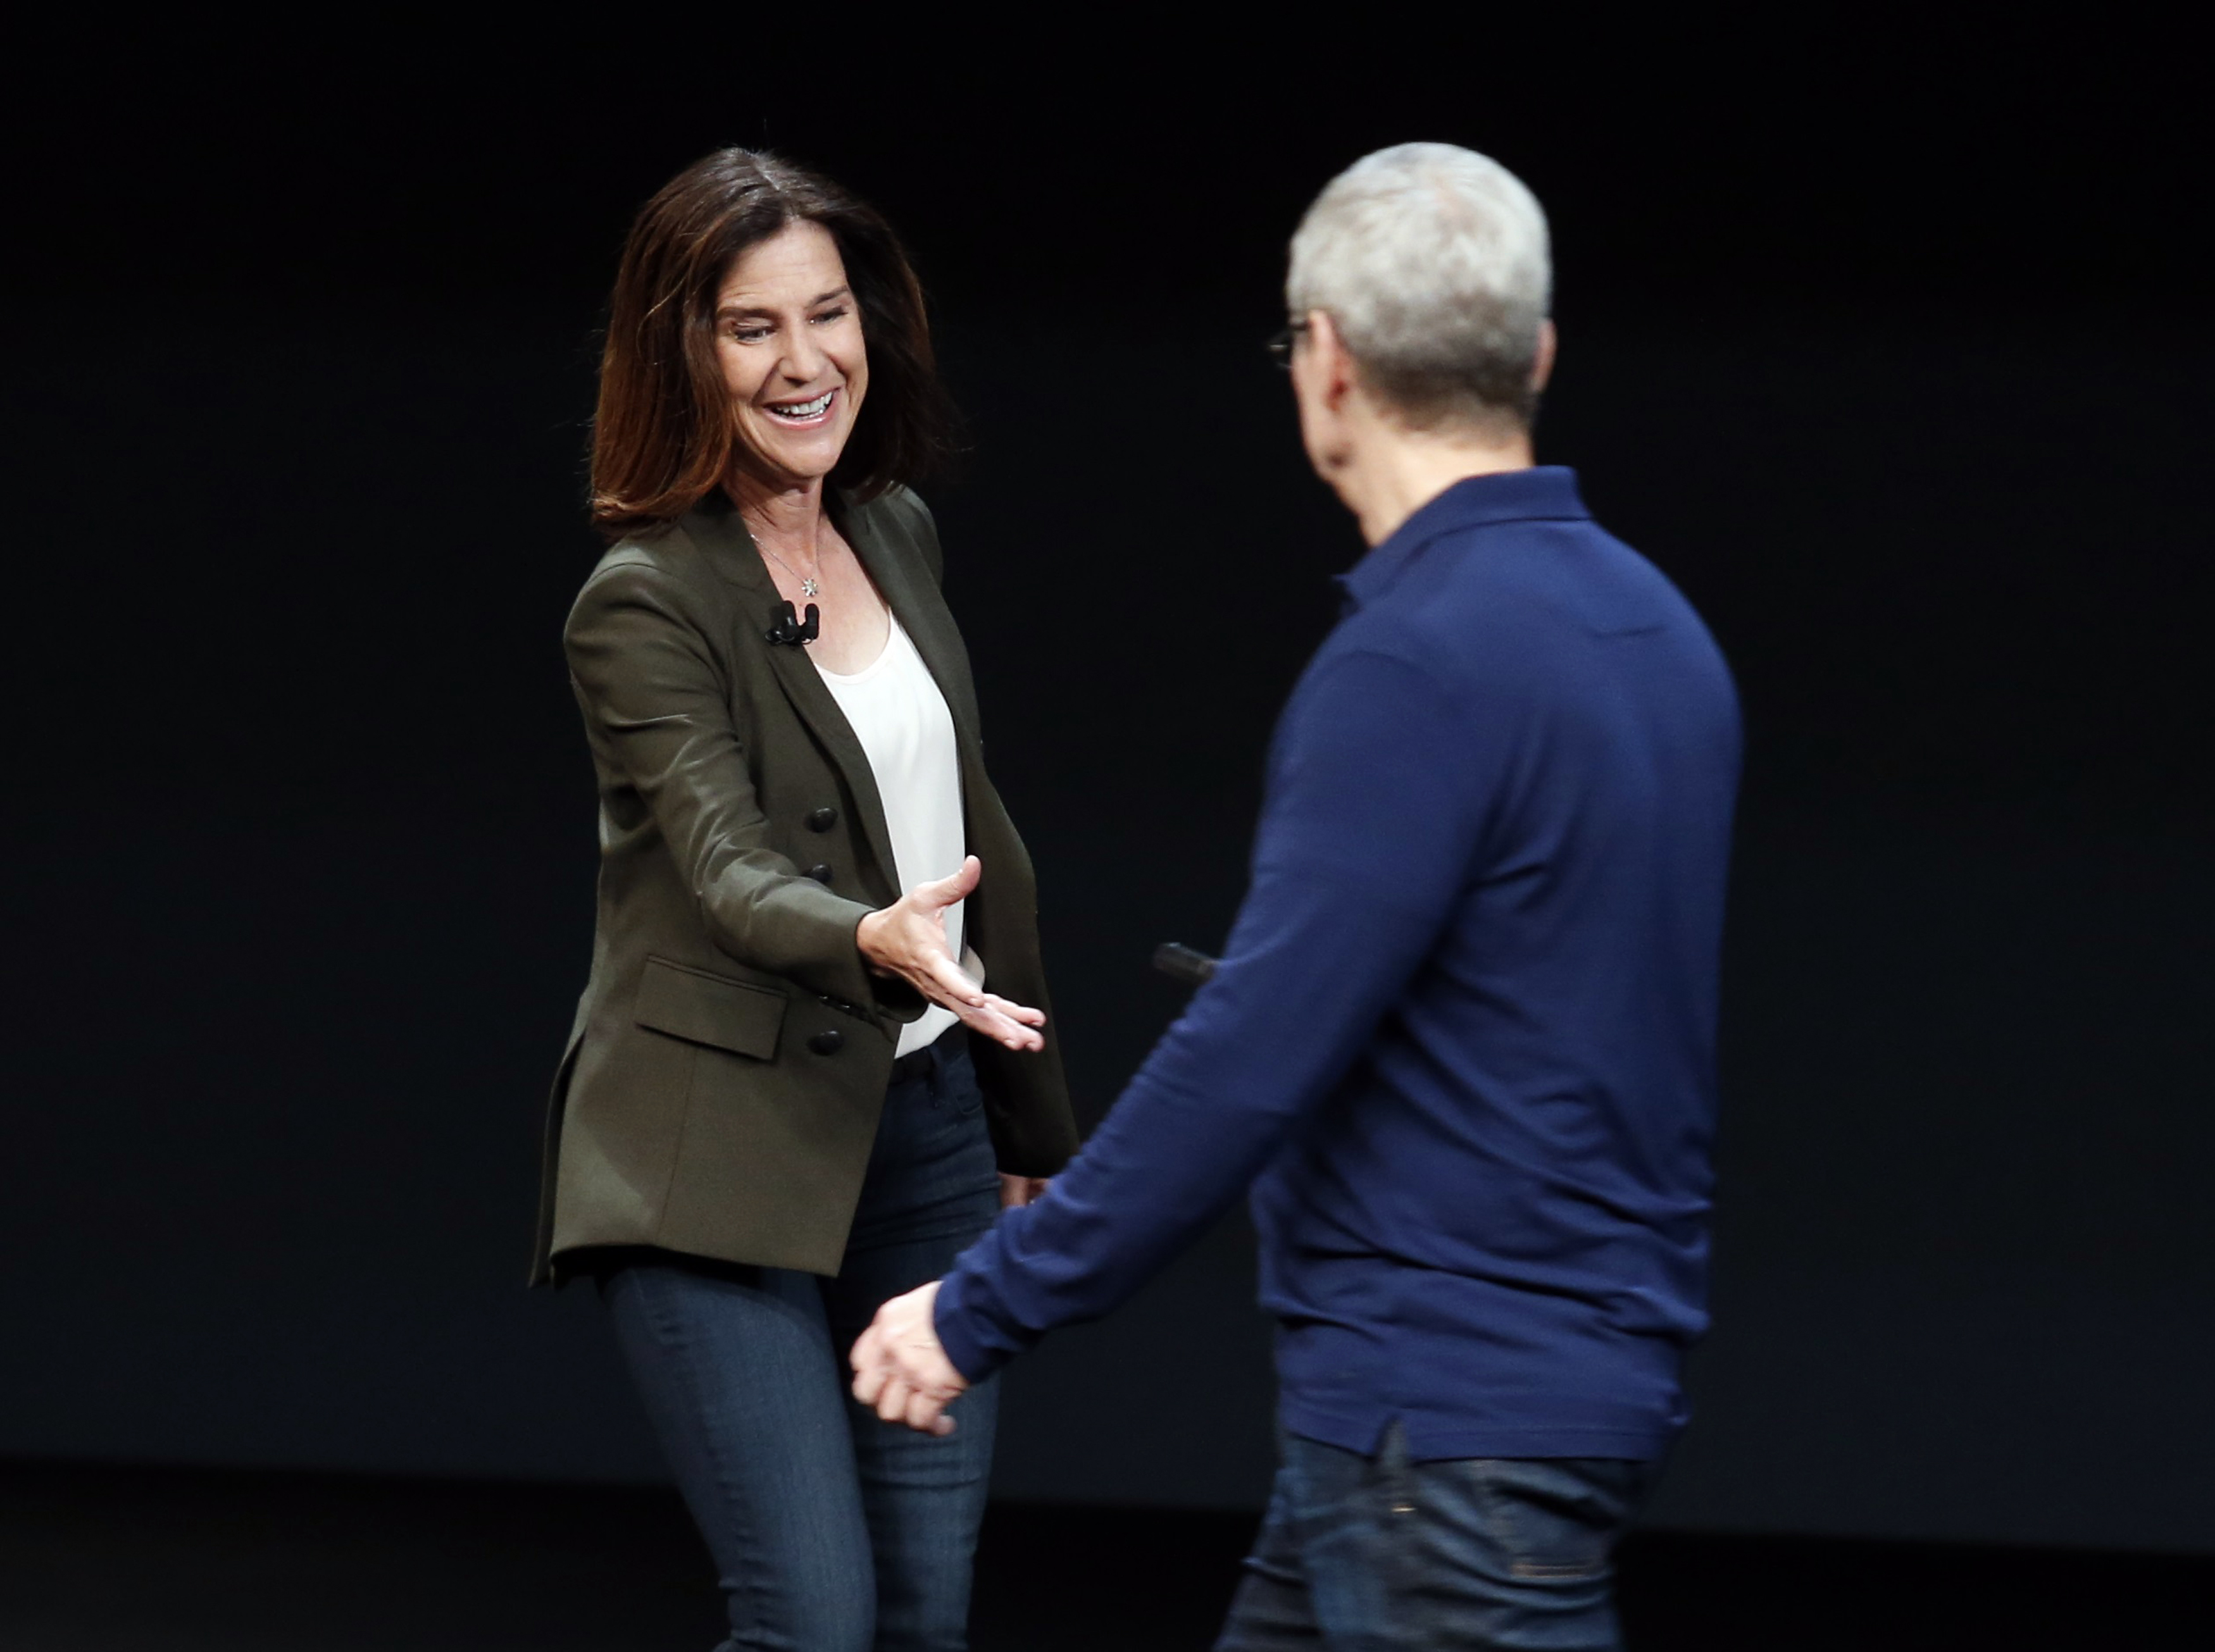 Susan Prescott is greeted by Tim Cook during an Apple media event in San Francisco